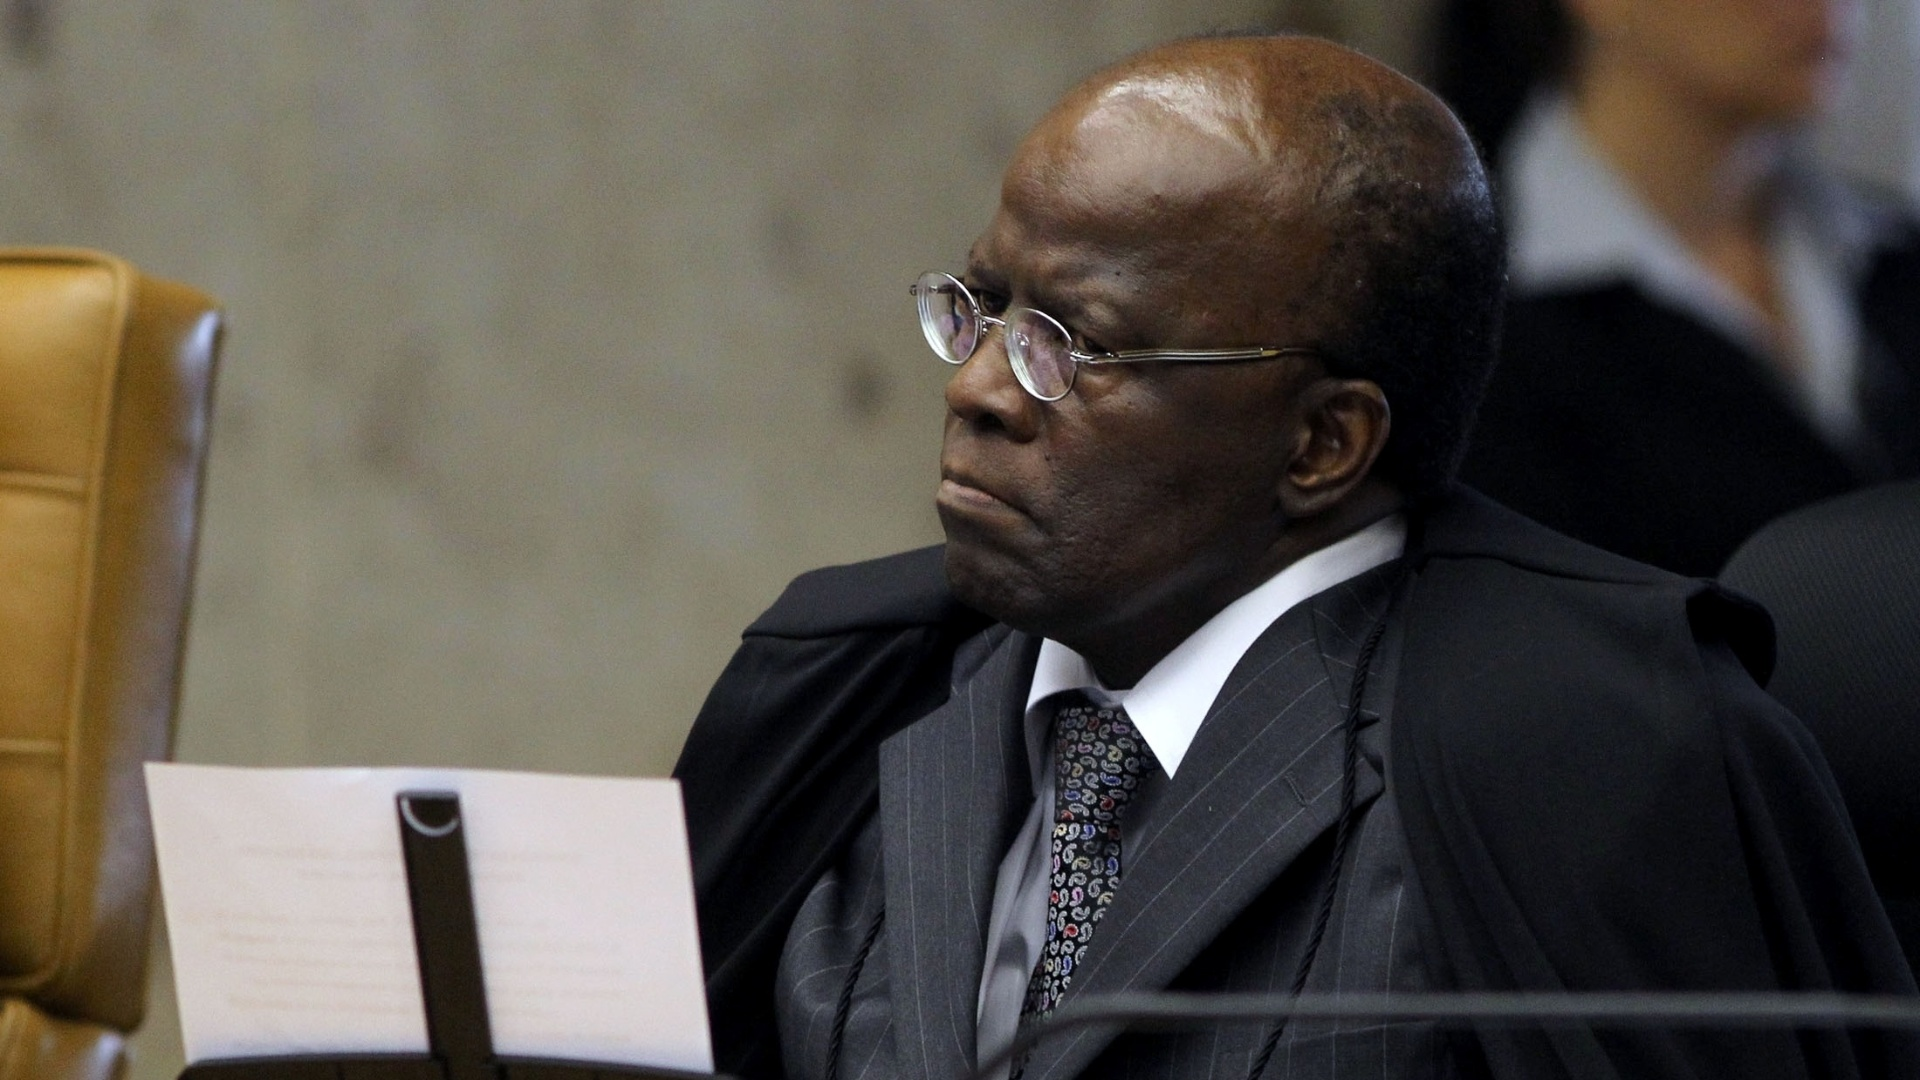 12.nov.2012 - O ministro-relator do processo do mensalo, Joaquim Barbosa, participa de sesso no STF, em Braslia. Durante a sesso, Barbosa Barbosa discutiu com o ministro-revisor do processo, Ricardo Lewandowski, e criticou o colega porque, na semana passada, Lewandowski levou vrios minutos para ler um artigo de jornal em defesa dos rus do ncleo publicitrio